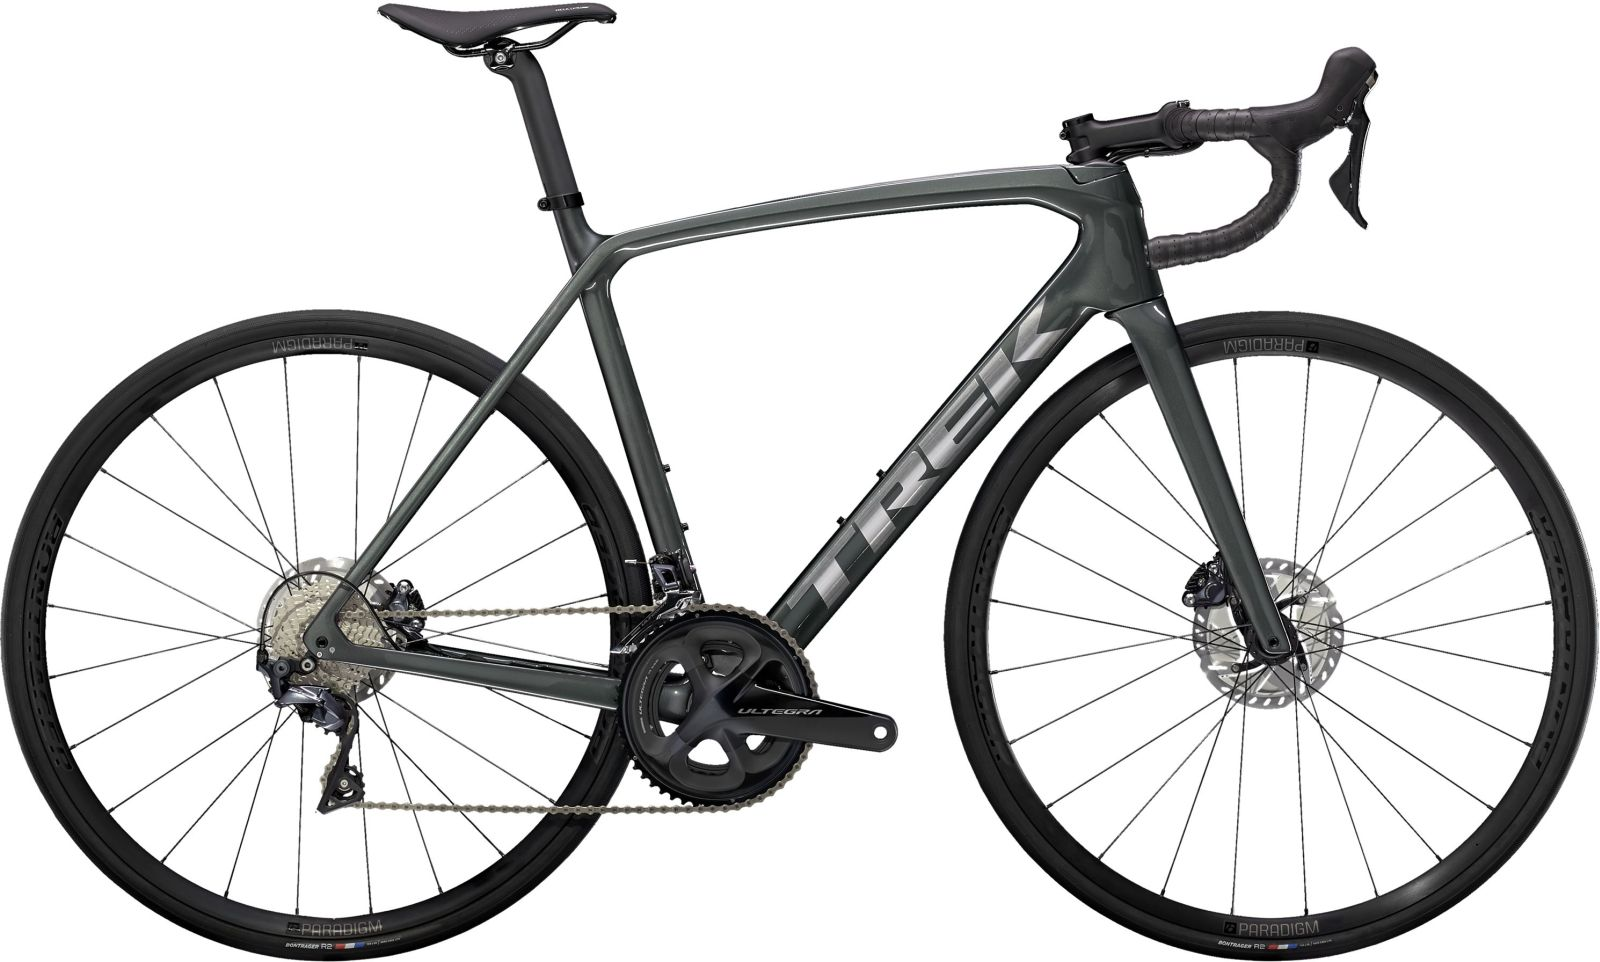 Trek Emonda SL 6 Disc - Lithium Grey/Brushed Chrome 54